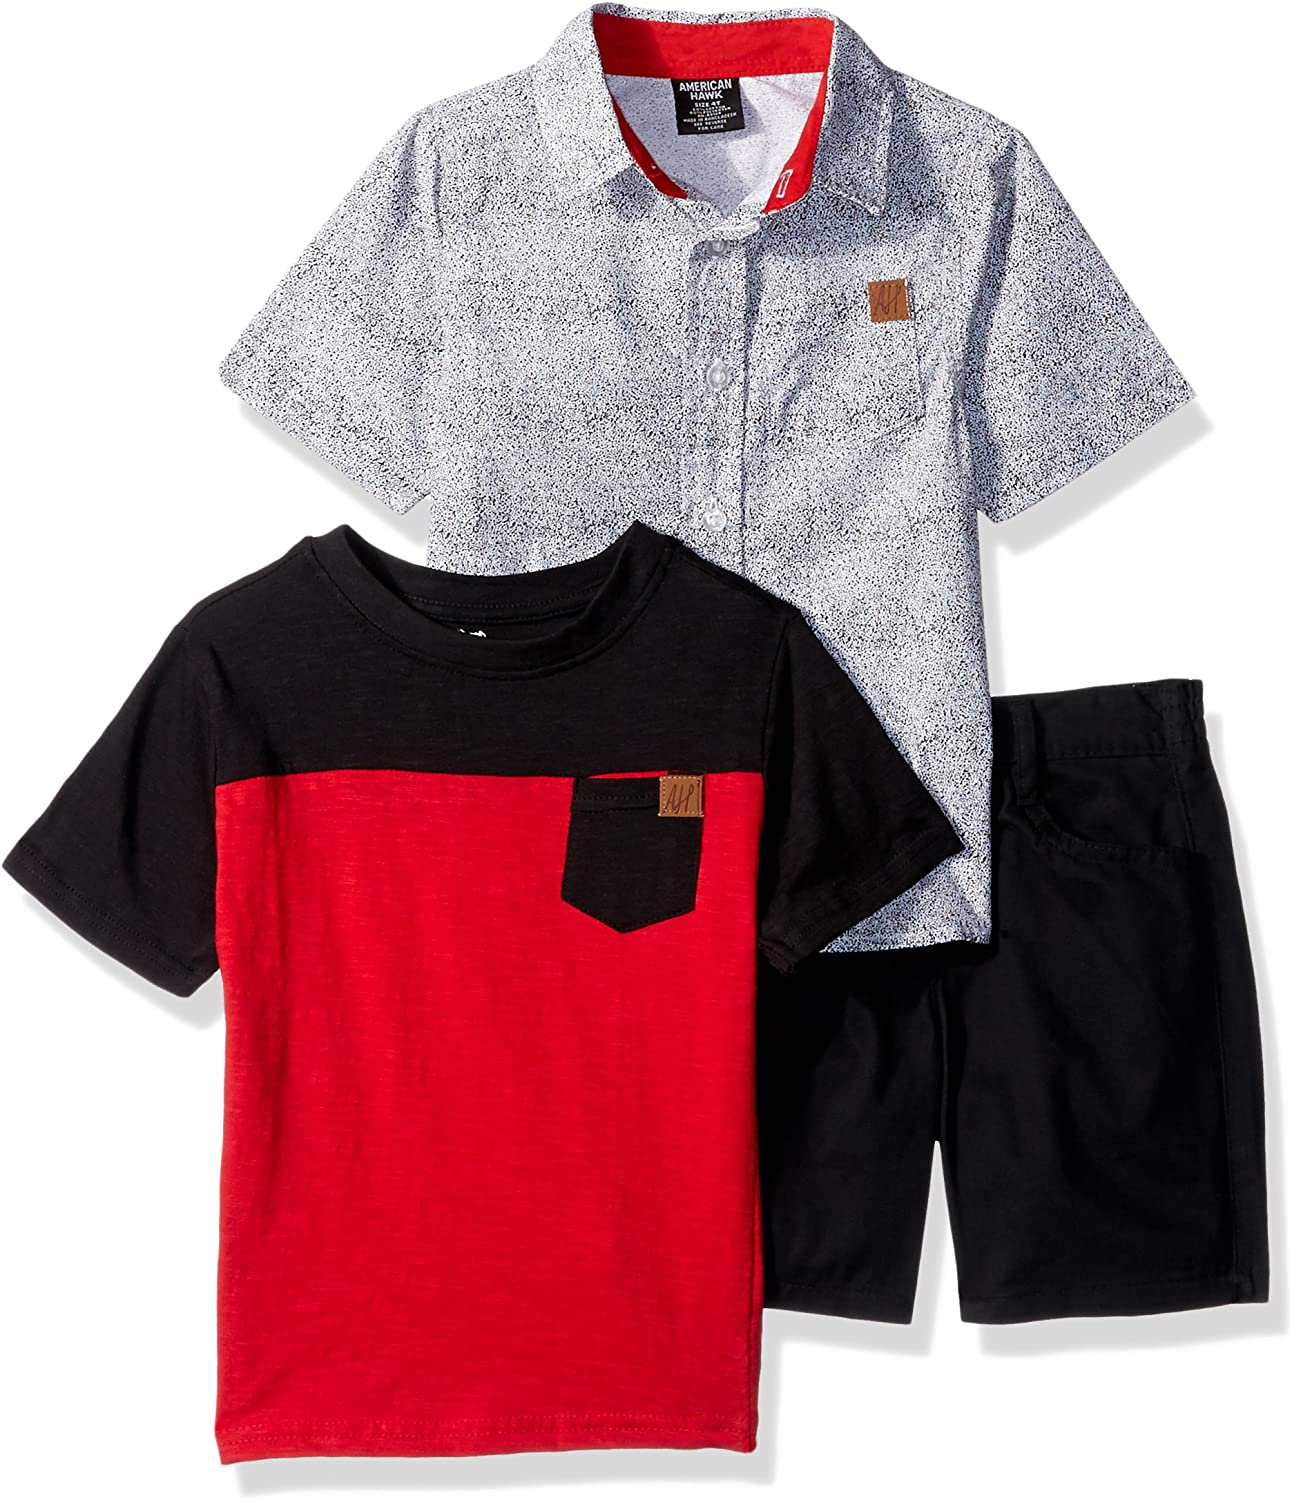 American Hawk Boys Toddler Classic Woven T-Shirt and Short Set